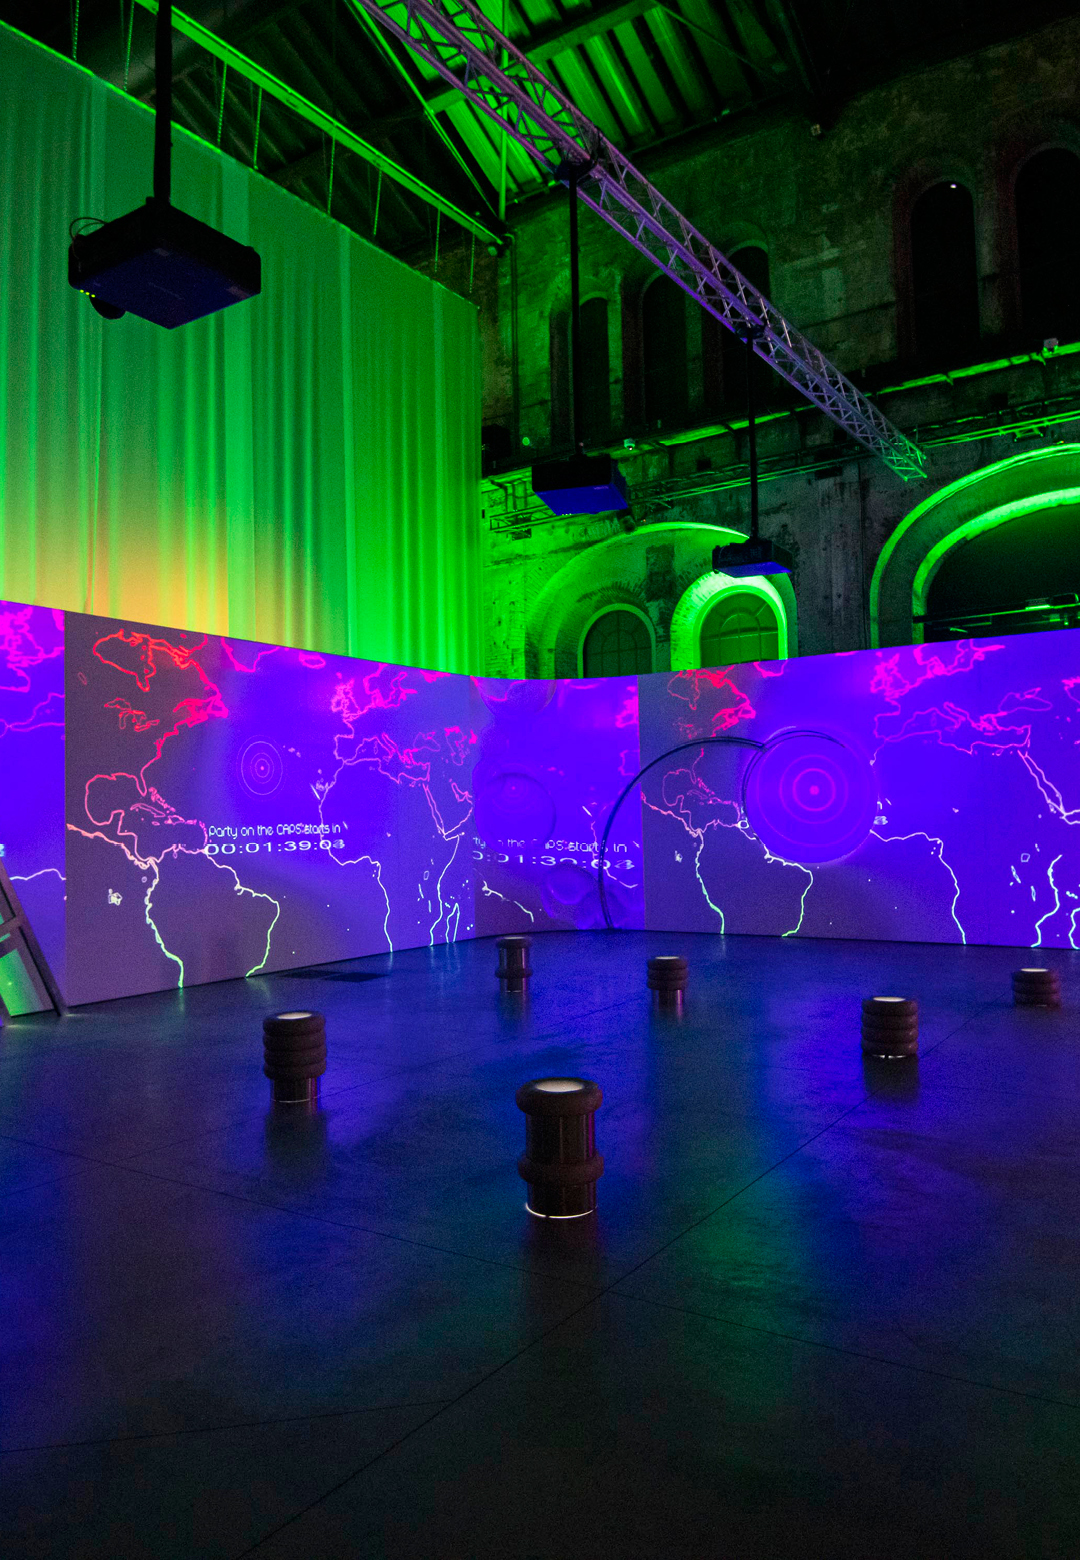 Biennale de l'Image en Mouvement, The Sound of Screens Imploding, Meriem Bennani, Party on the CAPS, Installation view at OGR – Turin | The Biennale of Moving Images | STIRworld